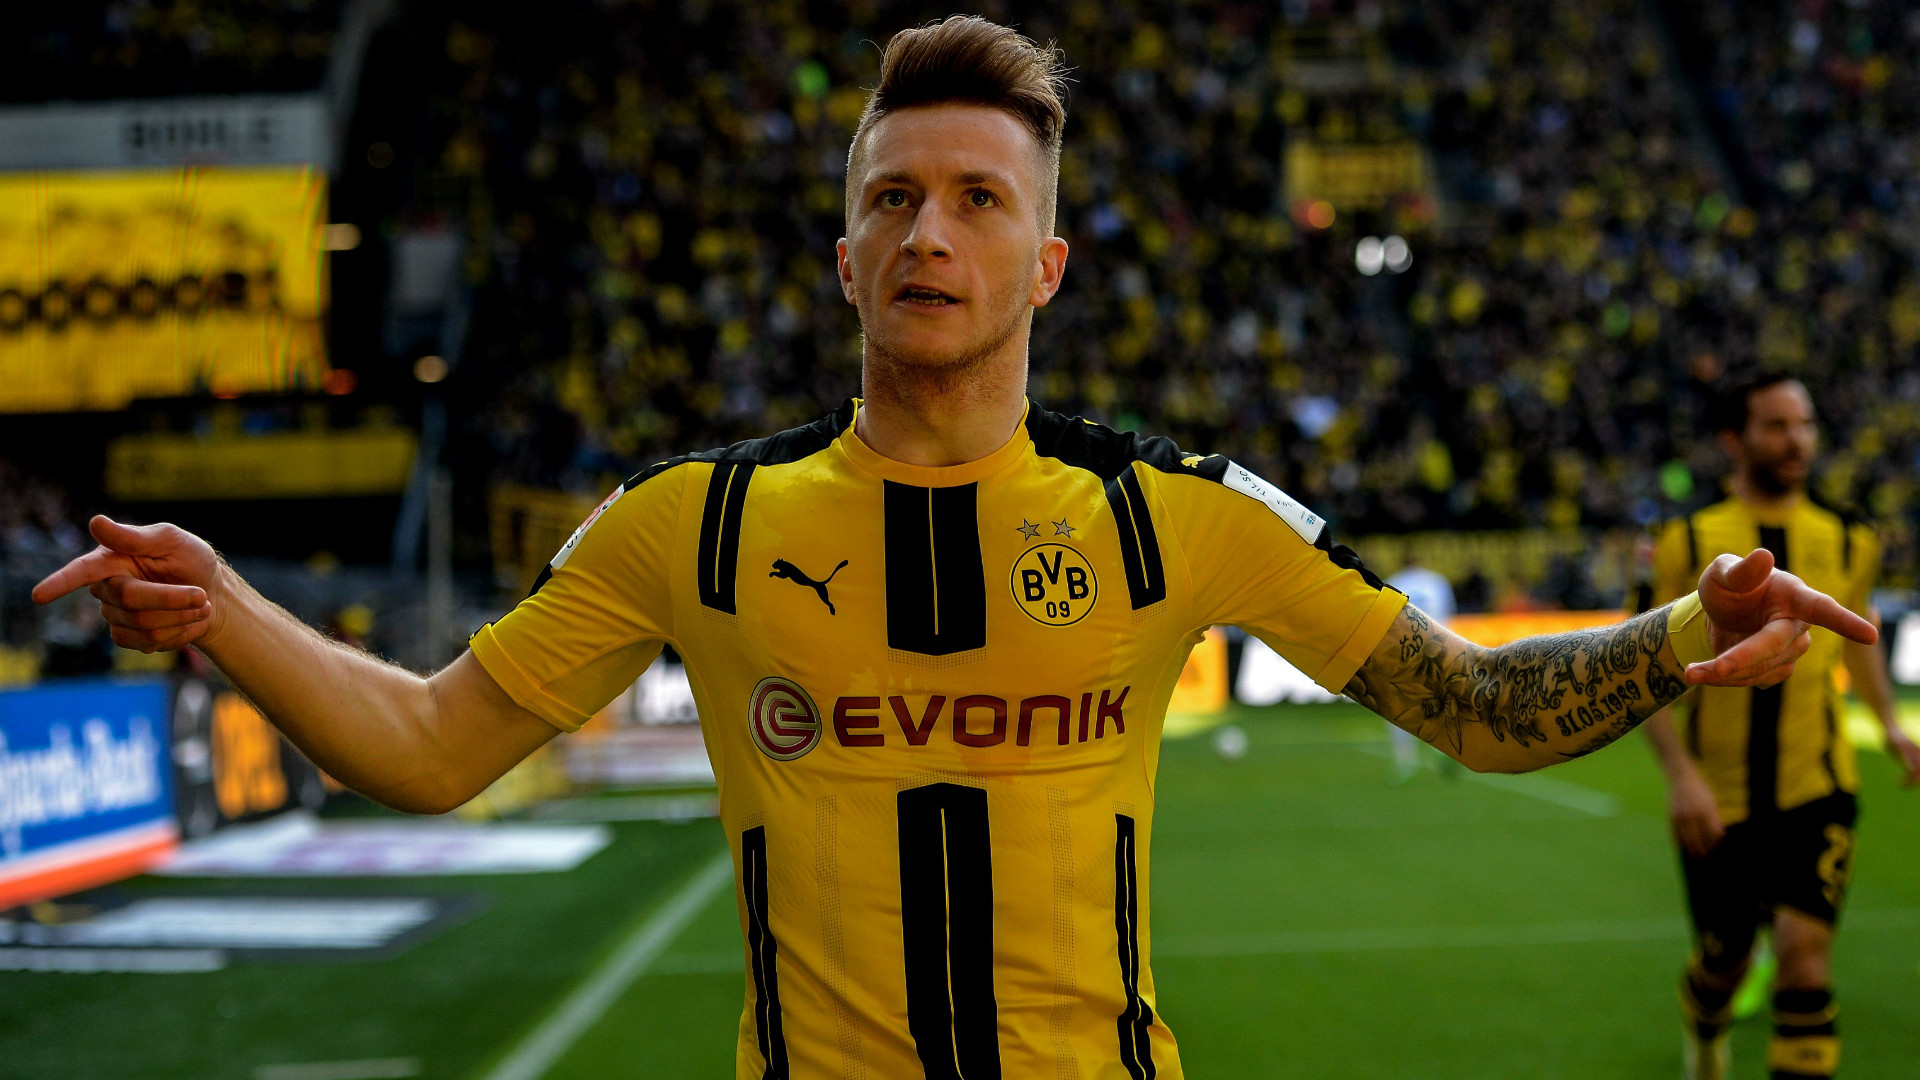 Champions League squads Diego Costa Marco Reus and the biggest